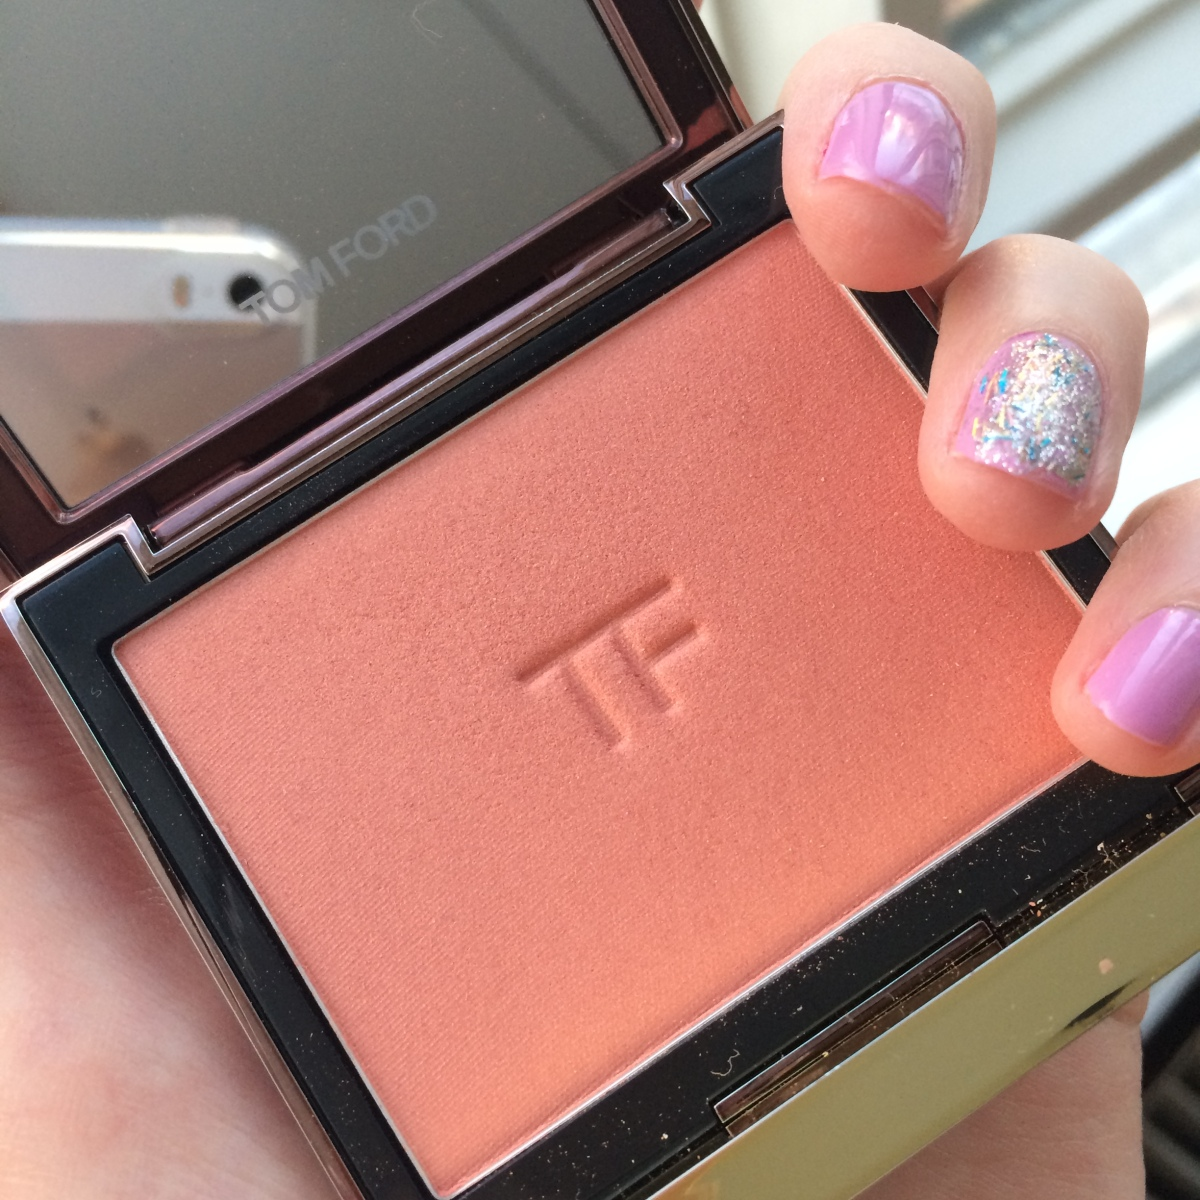 Tom Ford Cheek Color in 01 Love Lust